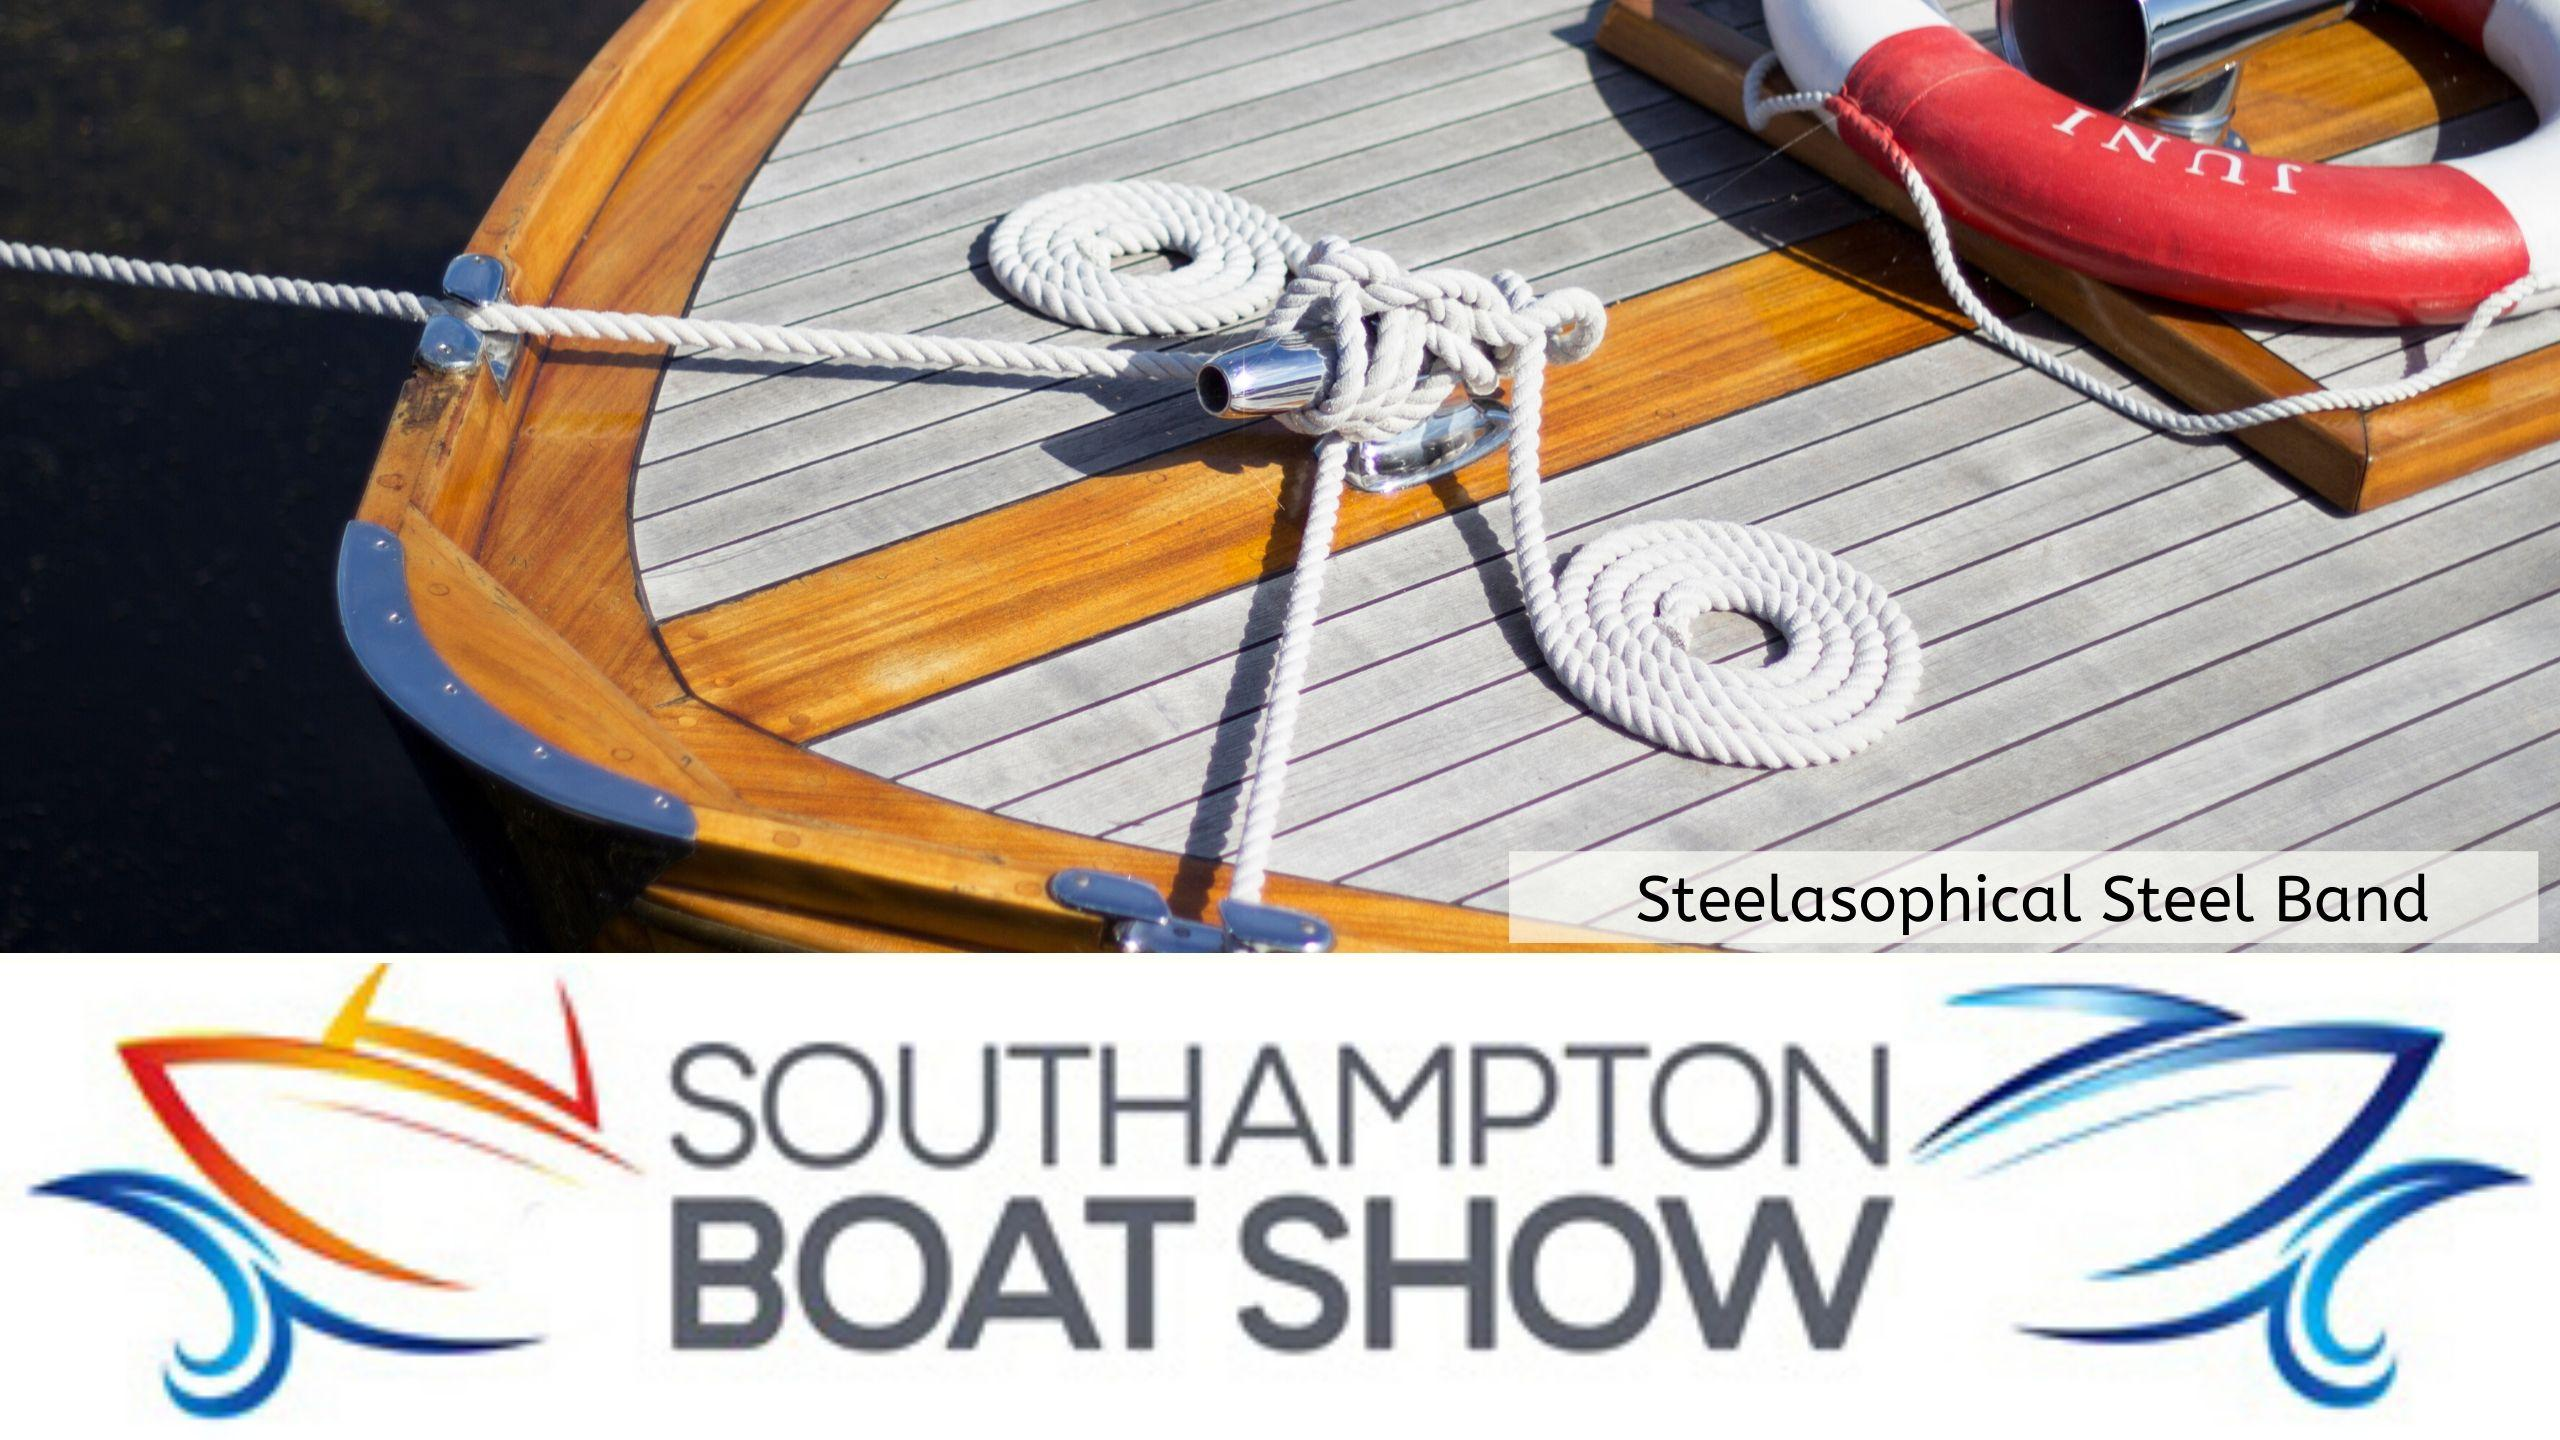 Steelasophical Steel Band Southampton Boat Show Yacht Market Entertainment 00v